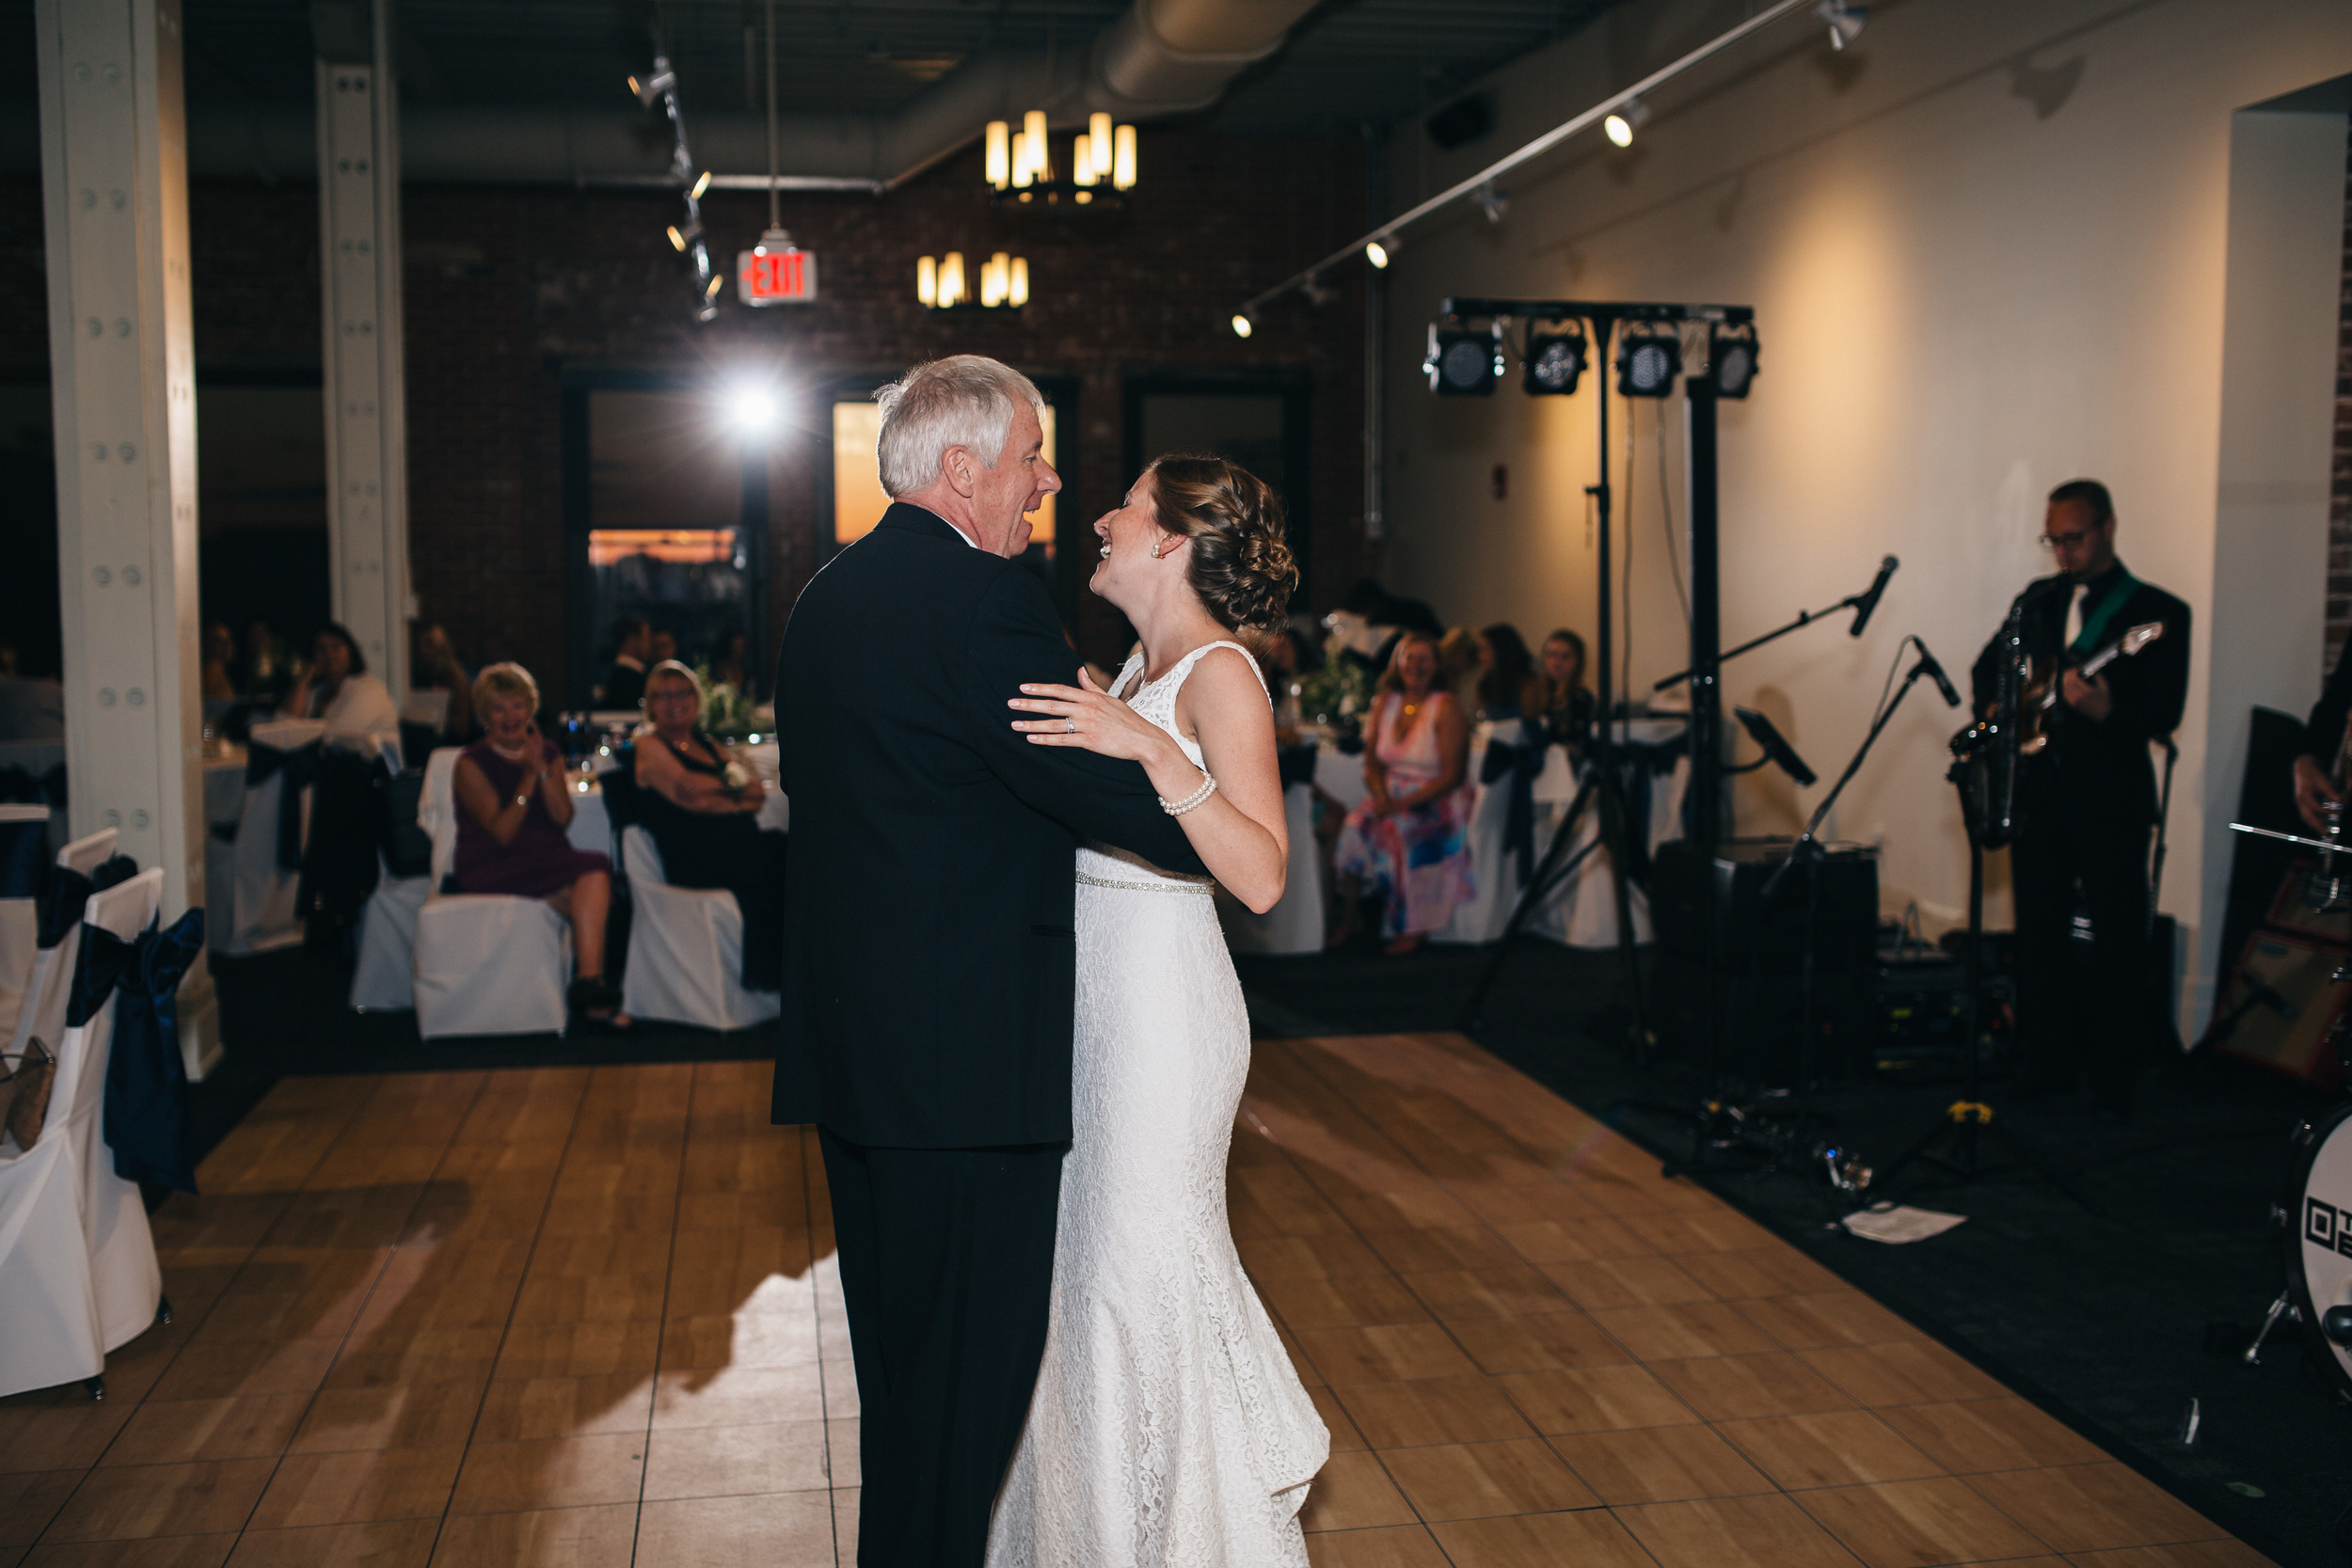 Bride dances with her father at downtown Toledo wedding reception.